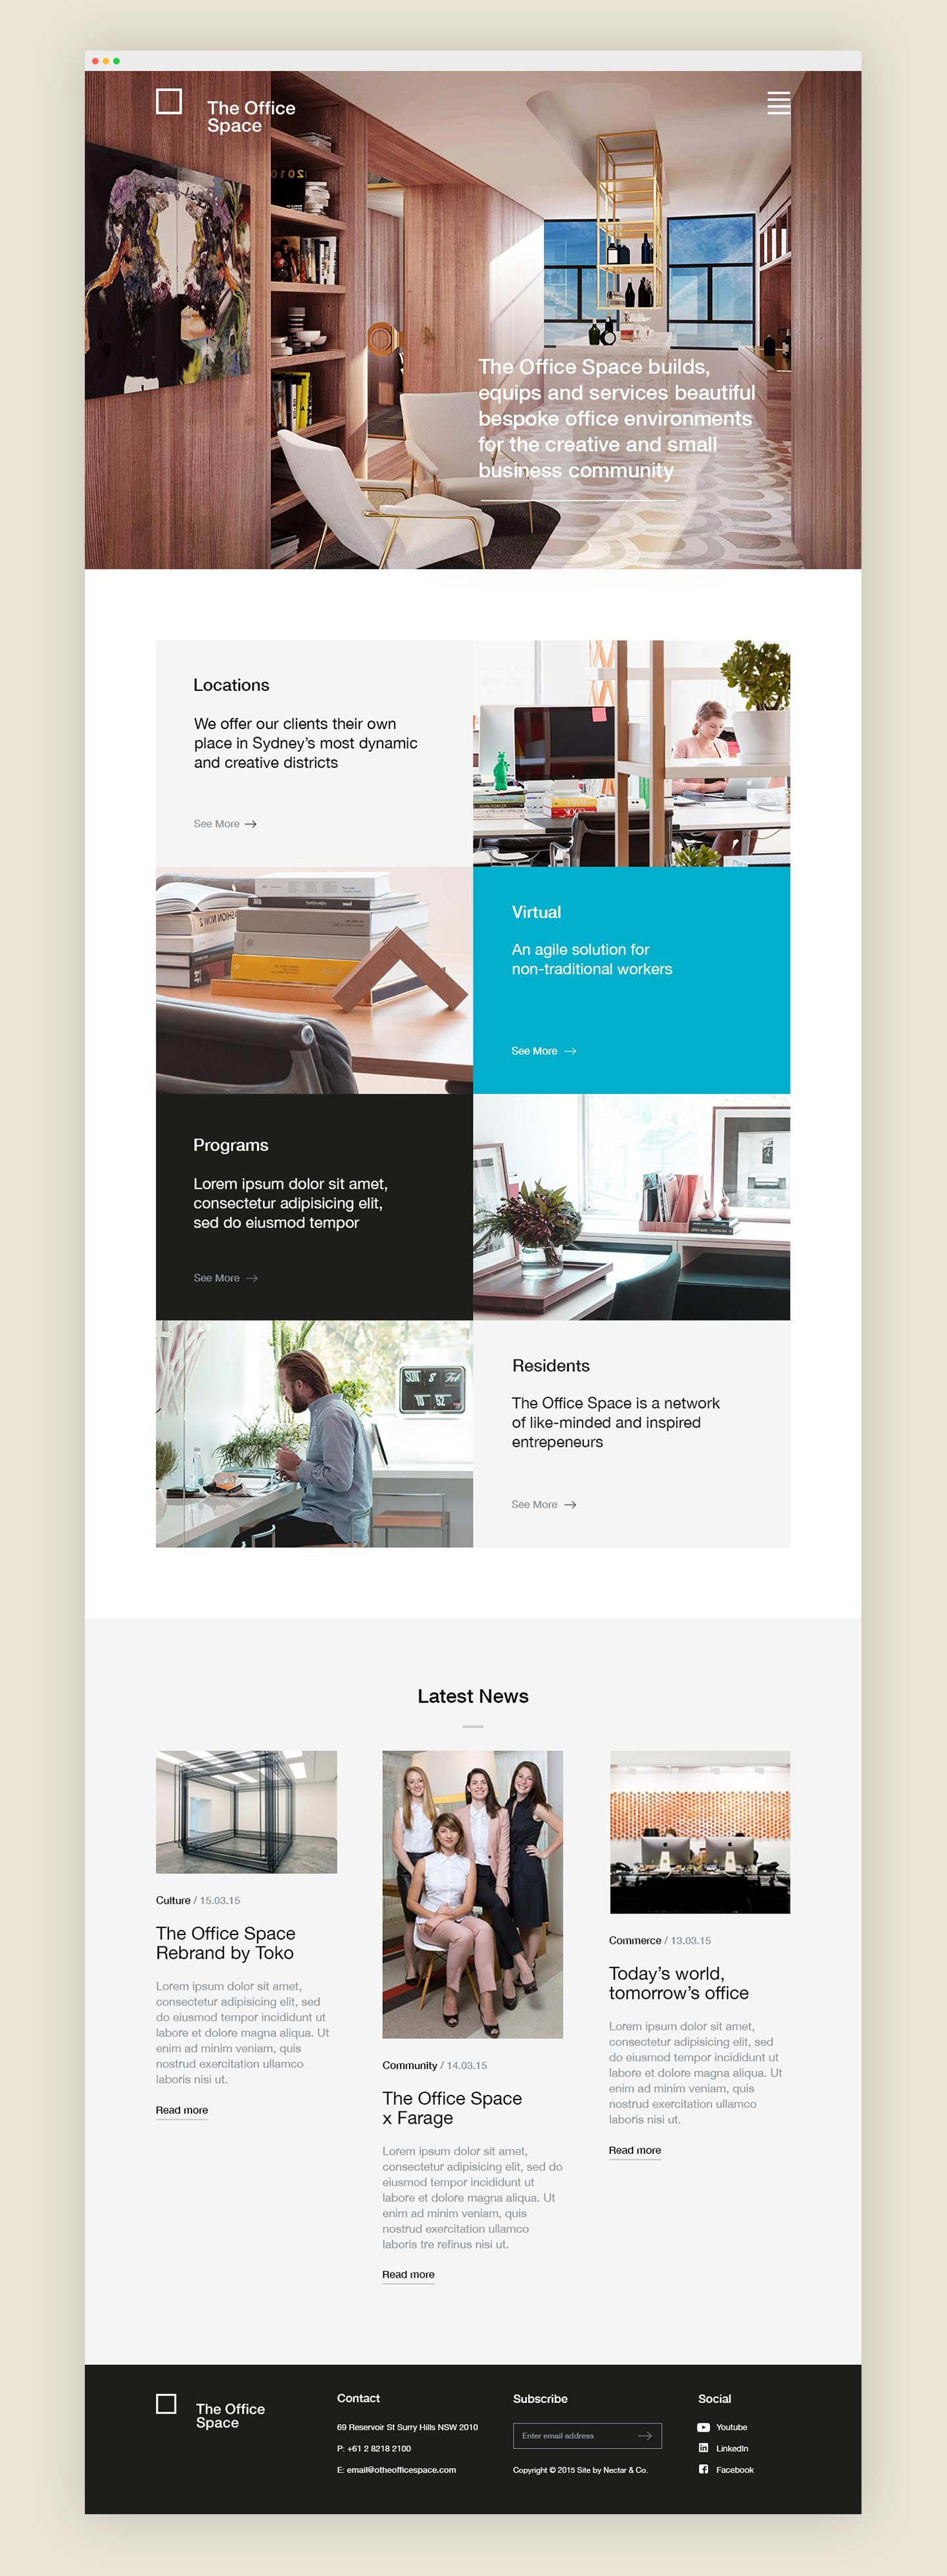 Nectar-and-Co_Portfolio-The-Office-Space-Home-Page.jpg